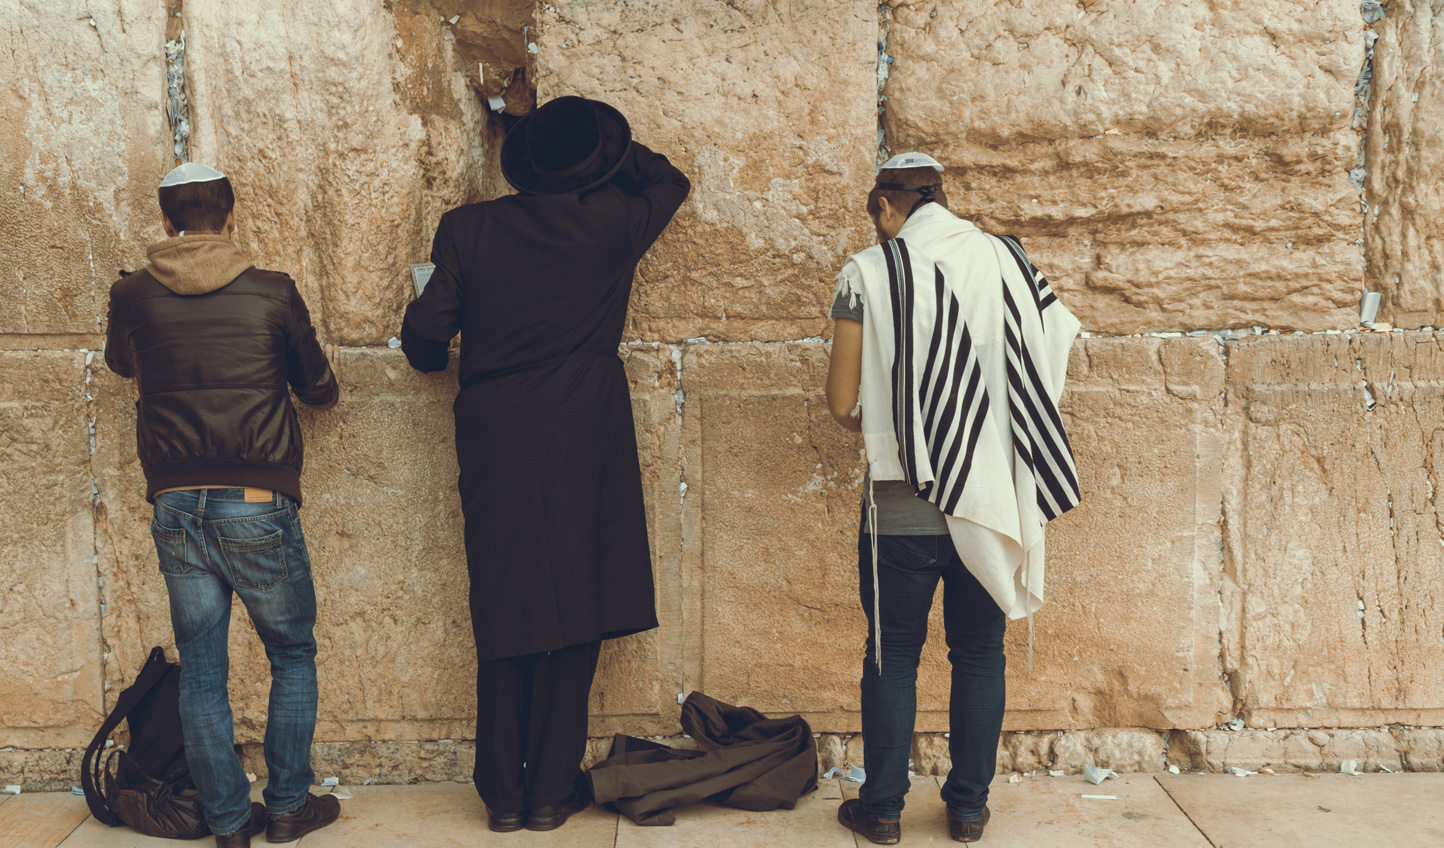 Witness the importance of Israel's holy sites